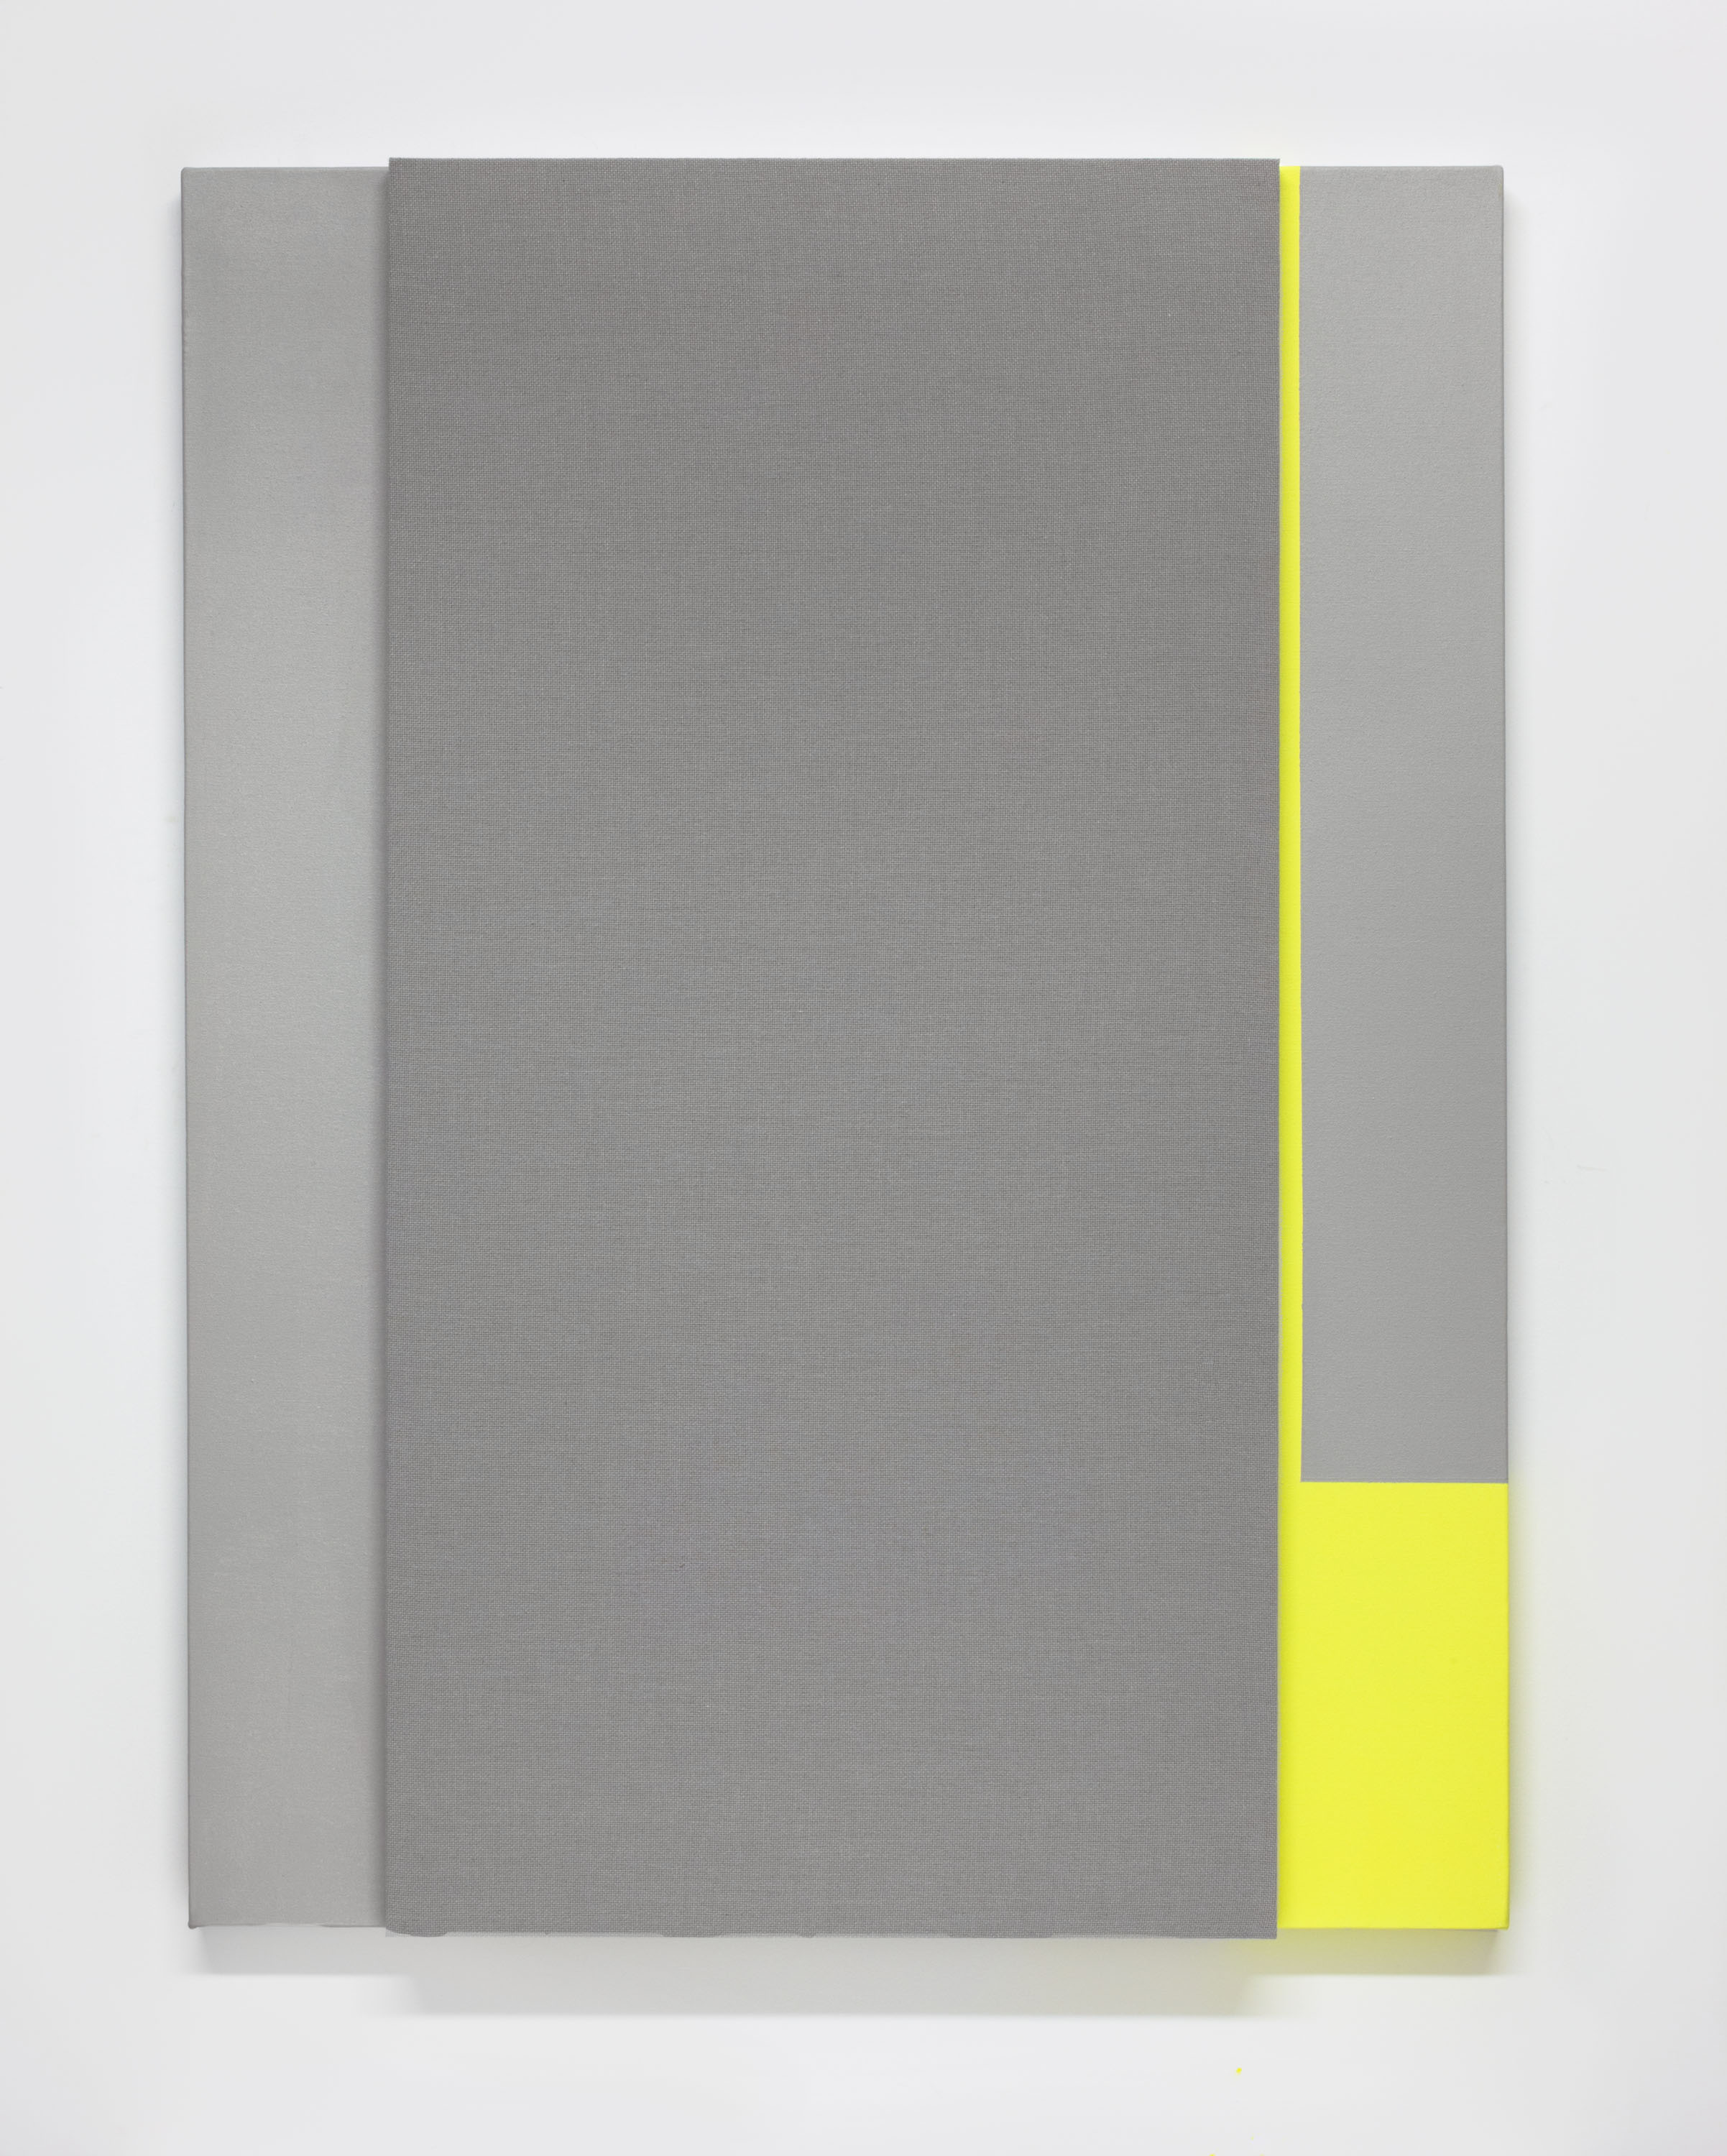 Soft Gray Tone with Reverberation #2--Acoustic absorber panel and acrylic paint on canvas, 36 x 48 inches each, 2013.